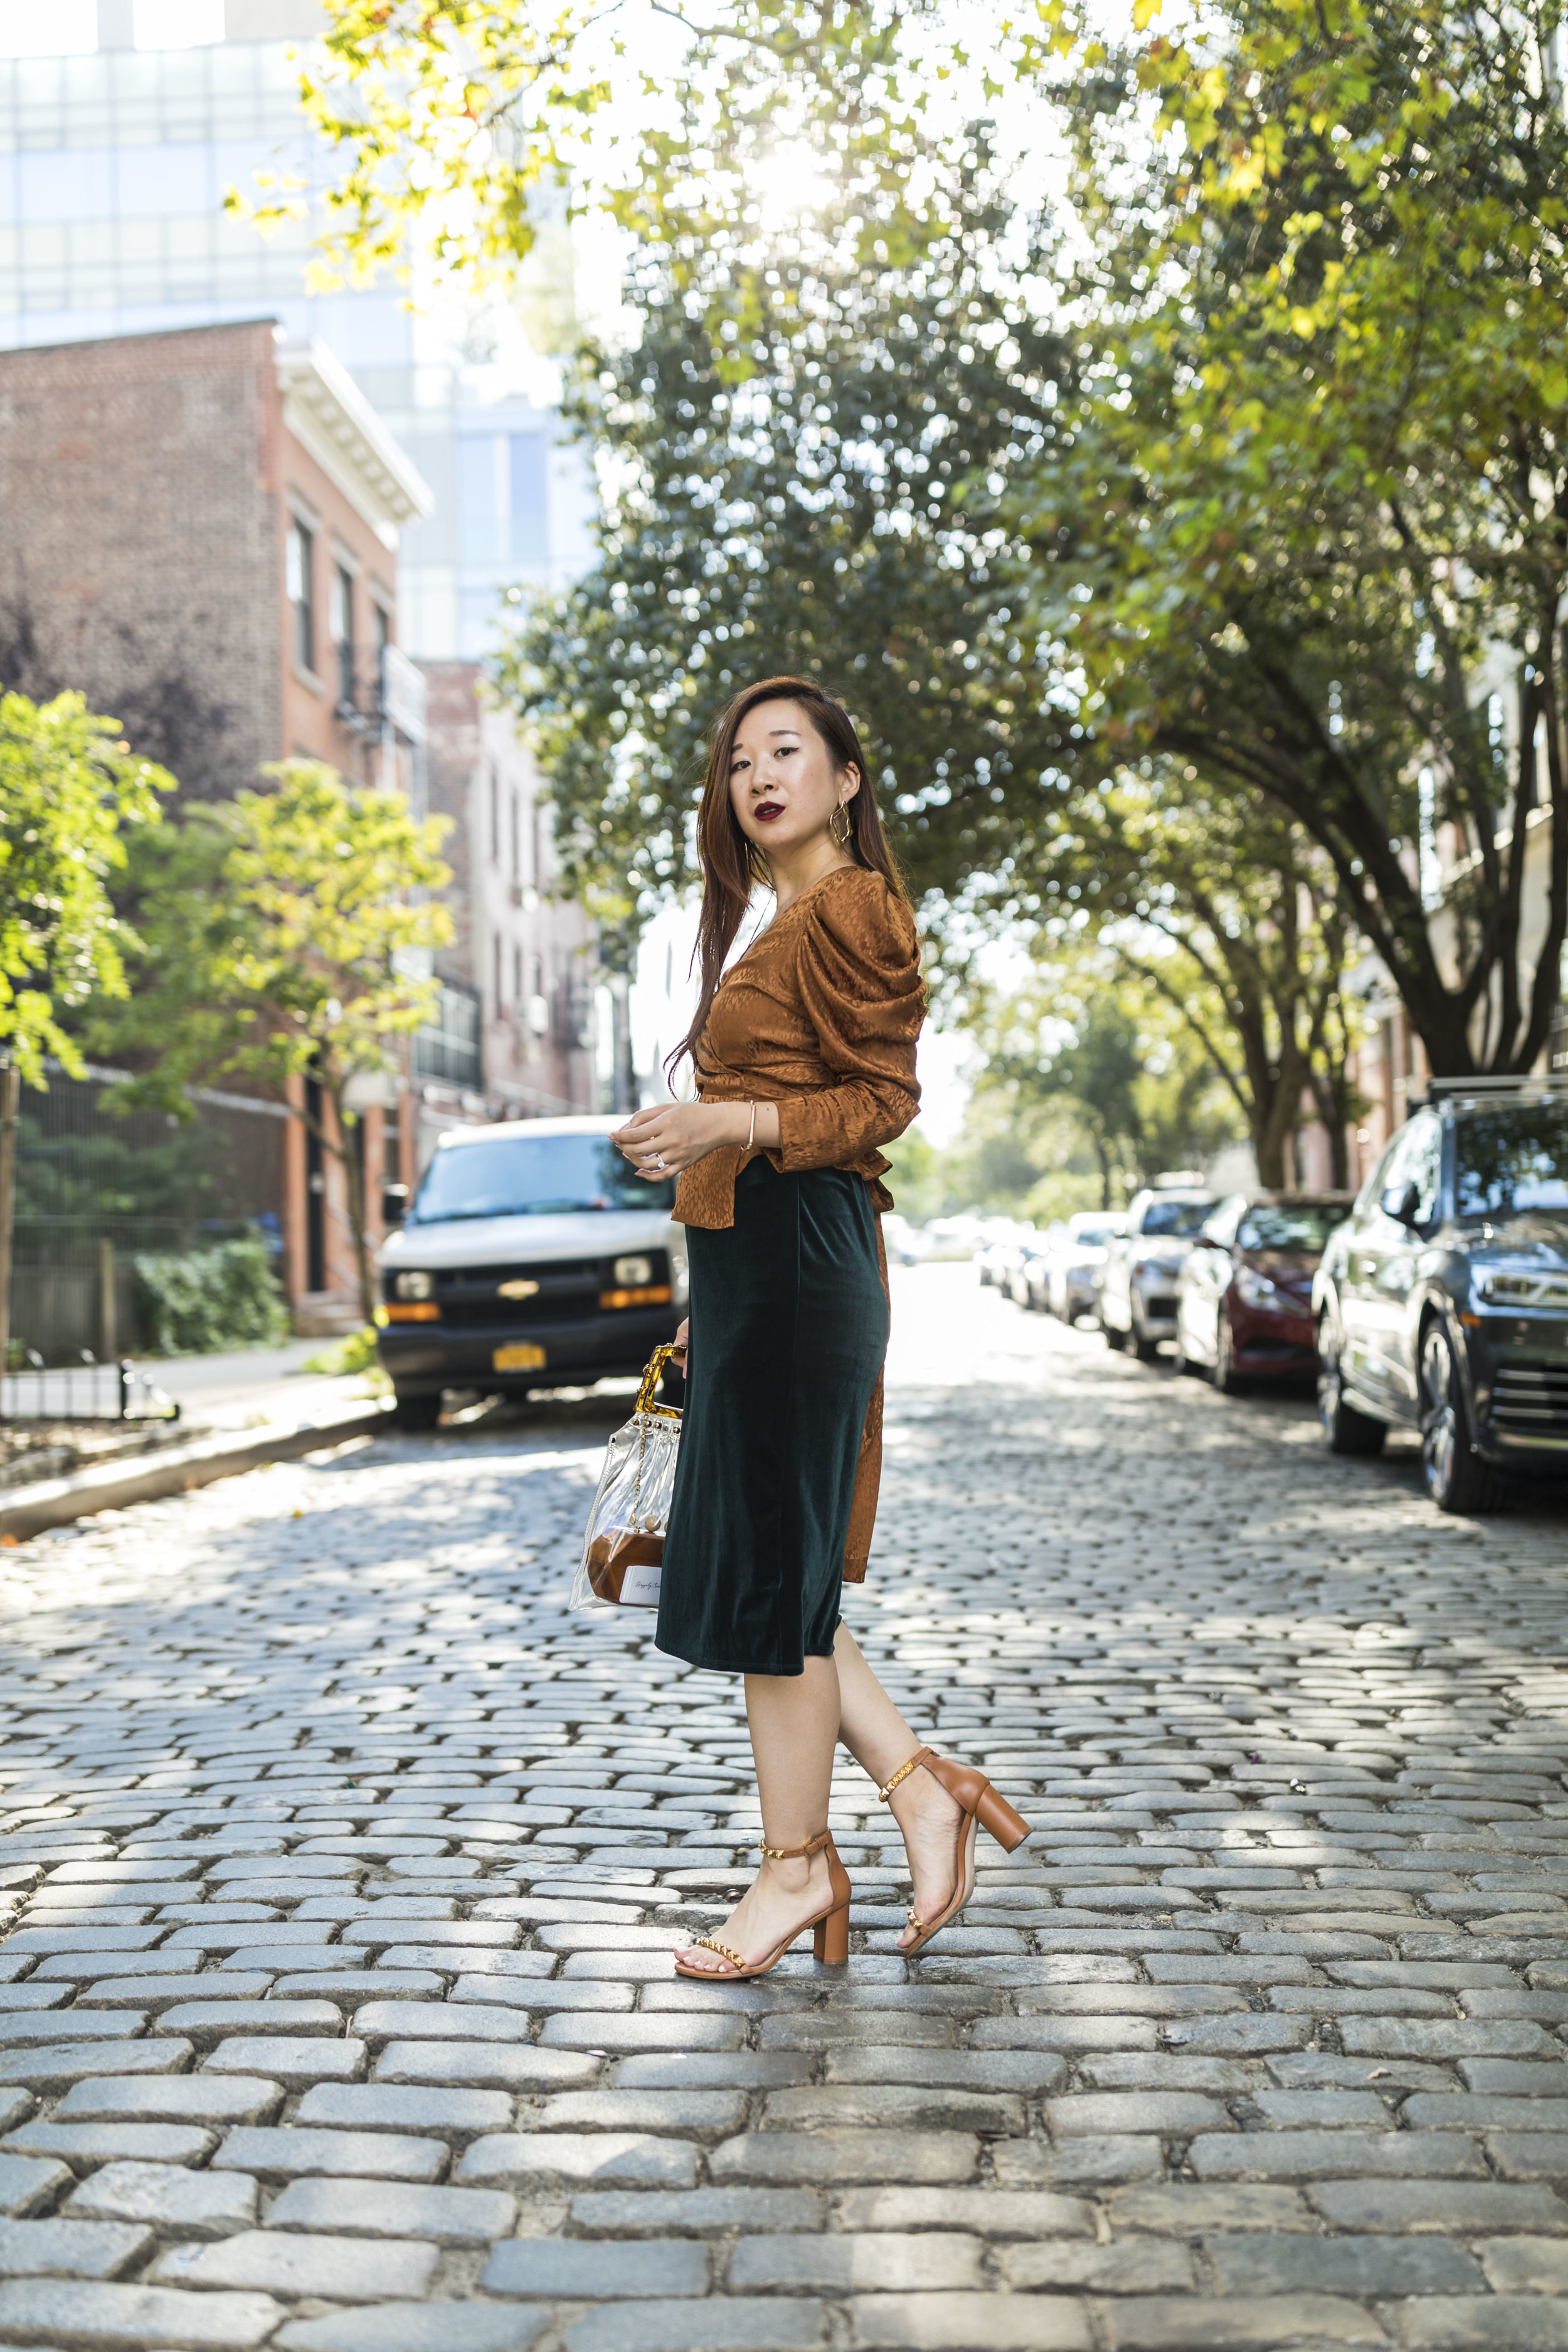 #NYFW Day 1(Part 2) - Welcoming warm autumn hues.